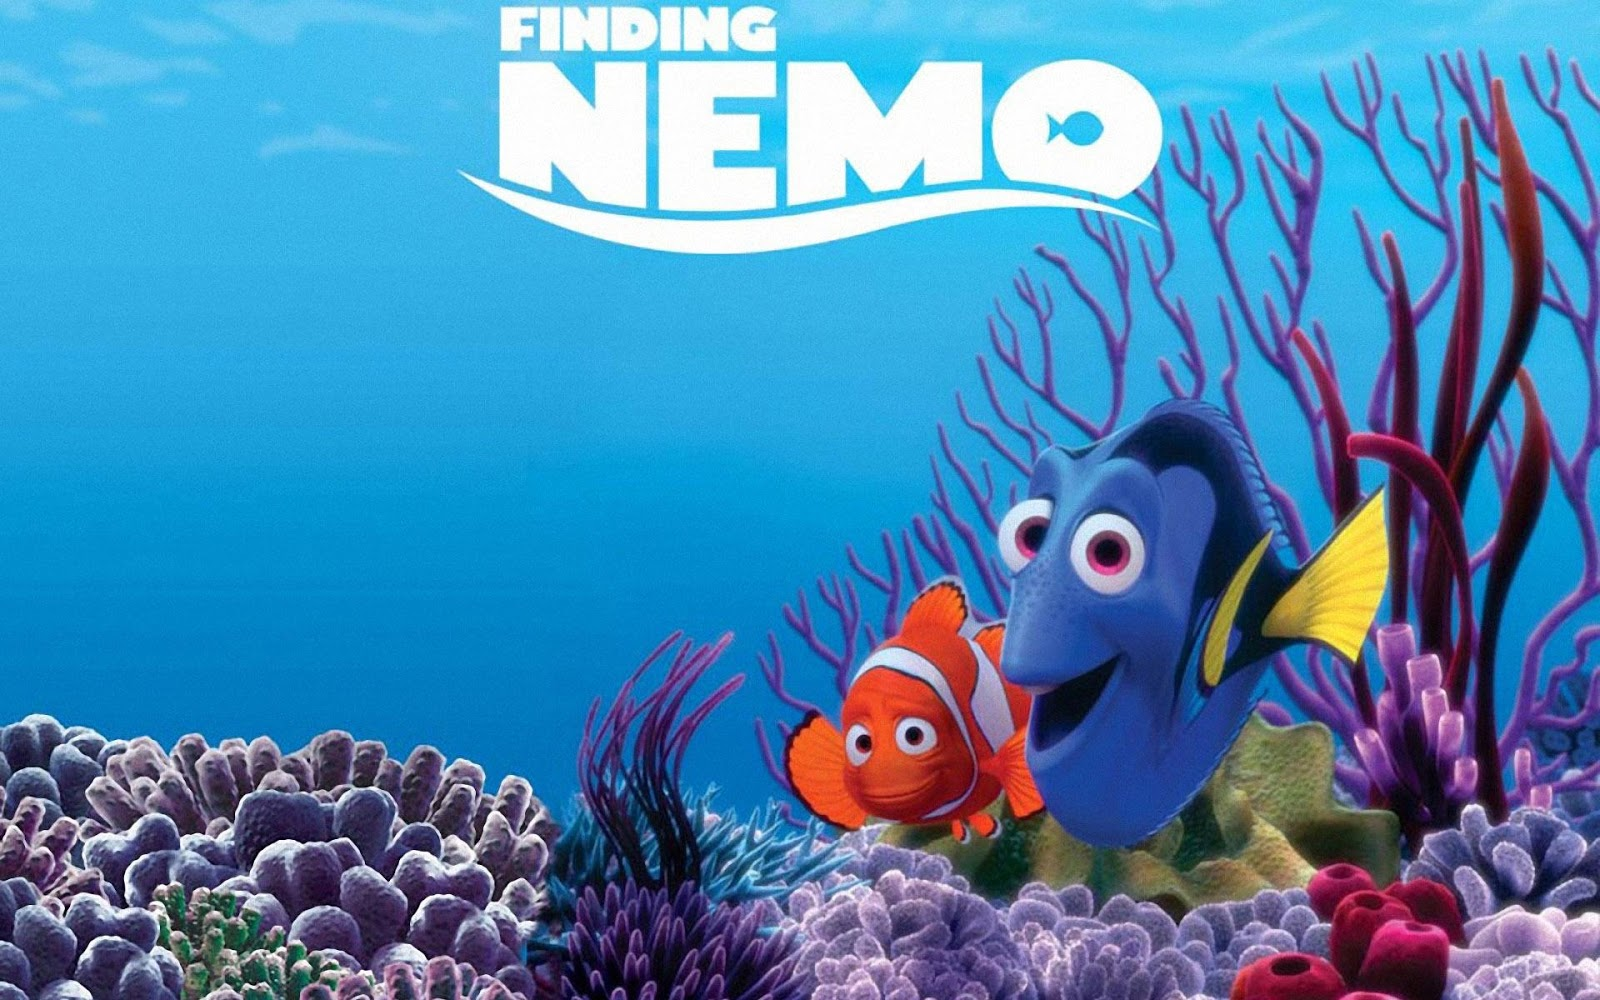 finding nemo hd wallpapers - photo #2